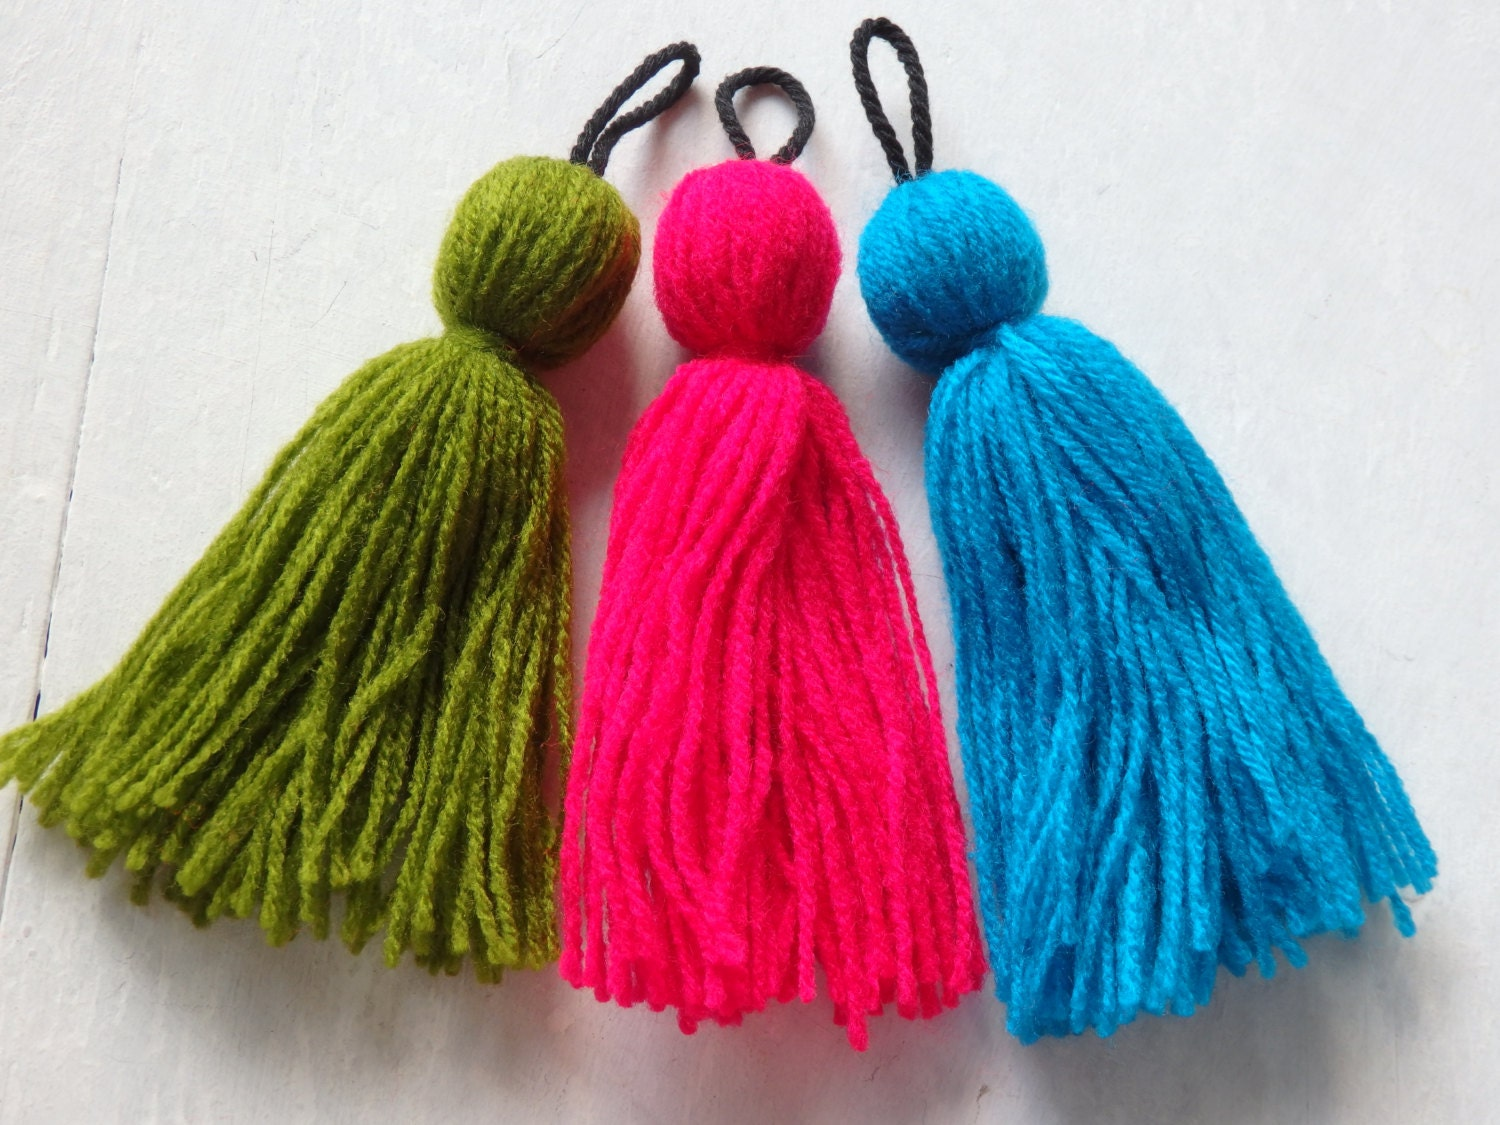 3 hmong wool tassels three large hmong hill tribe tassels from